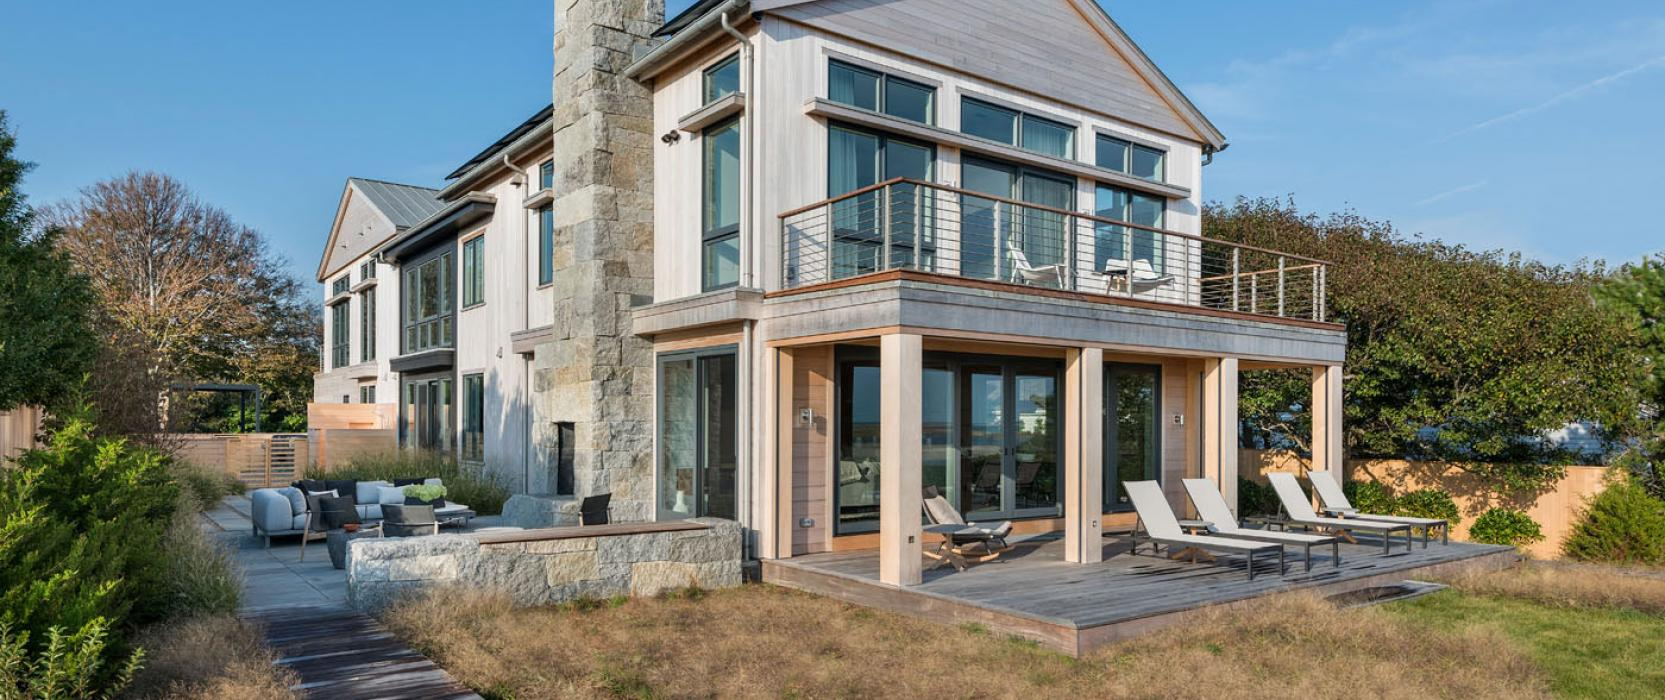 An organic, modern oceanfront retreat in New England with a California flair